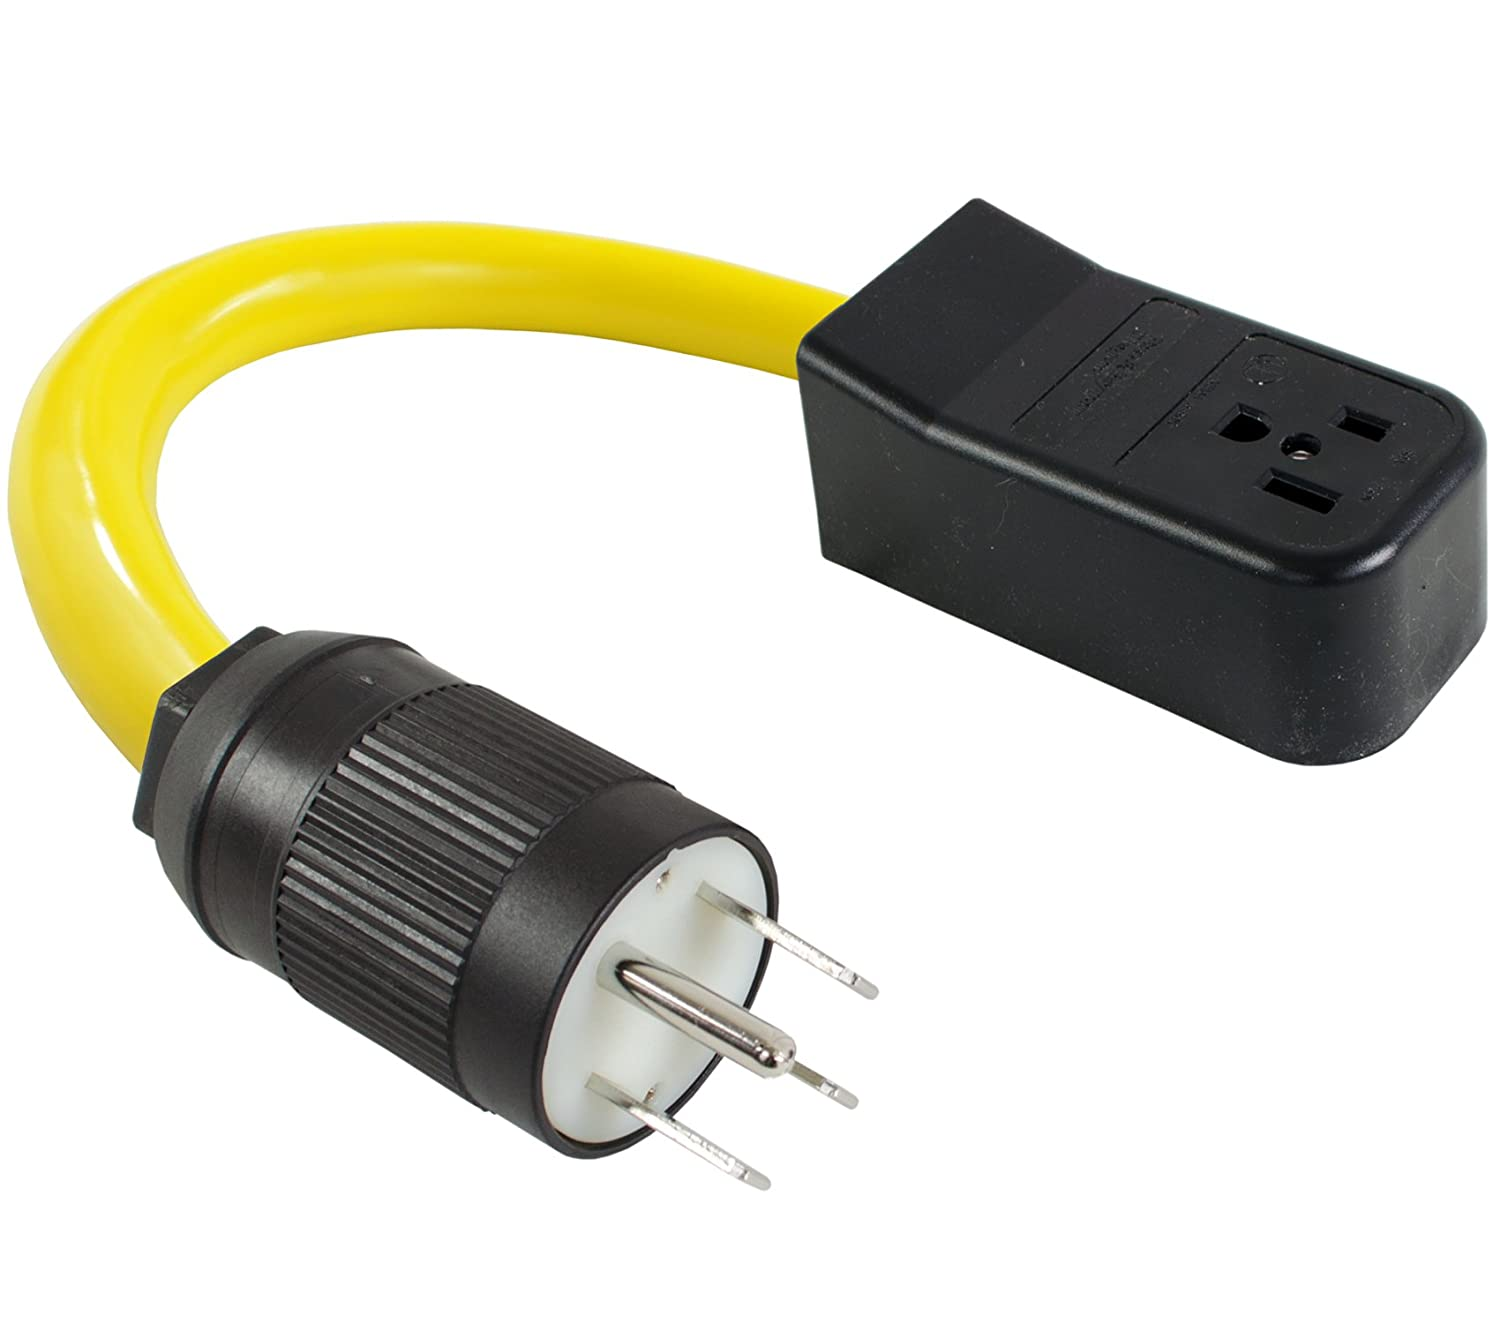 Safely Use Extension Cords When Charging An Electric Car Or Rated Electrical Box Designed To Be Used With A Range Receptacle Nema 6 50 14 240 Volt Amp